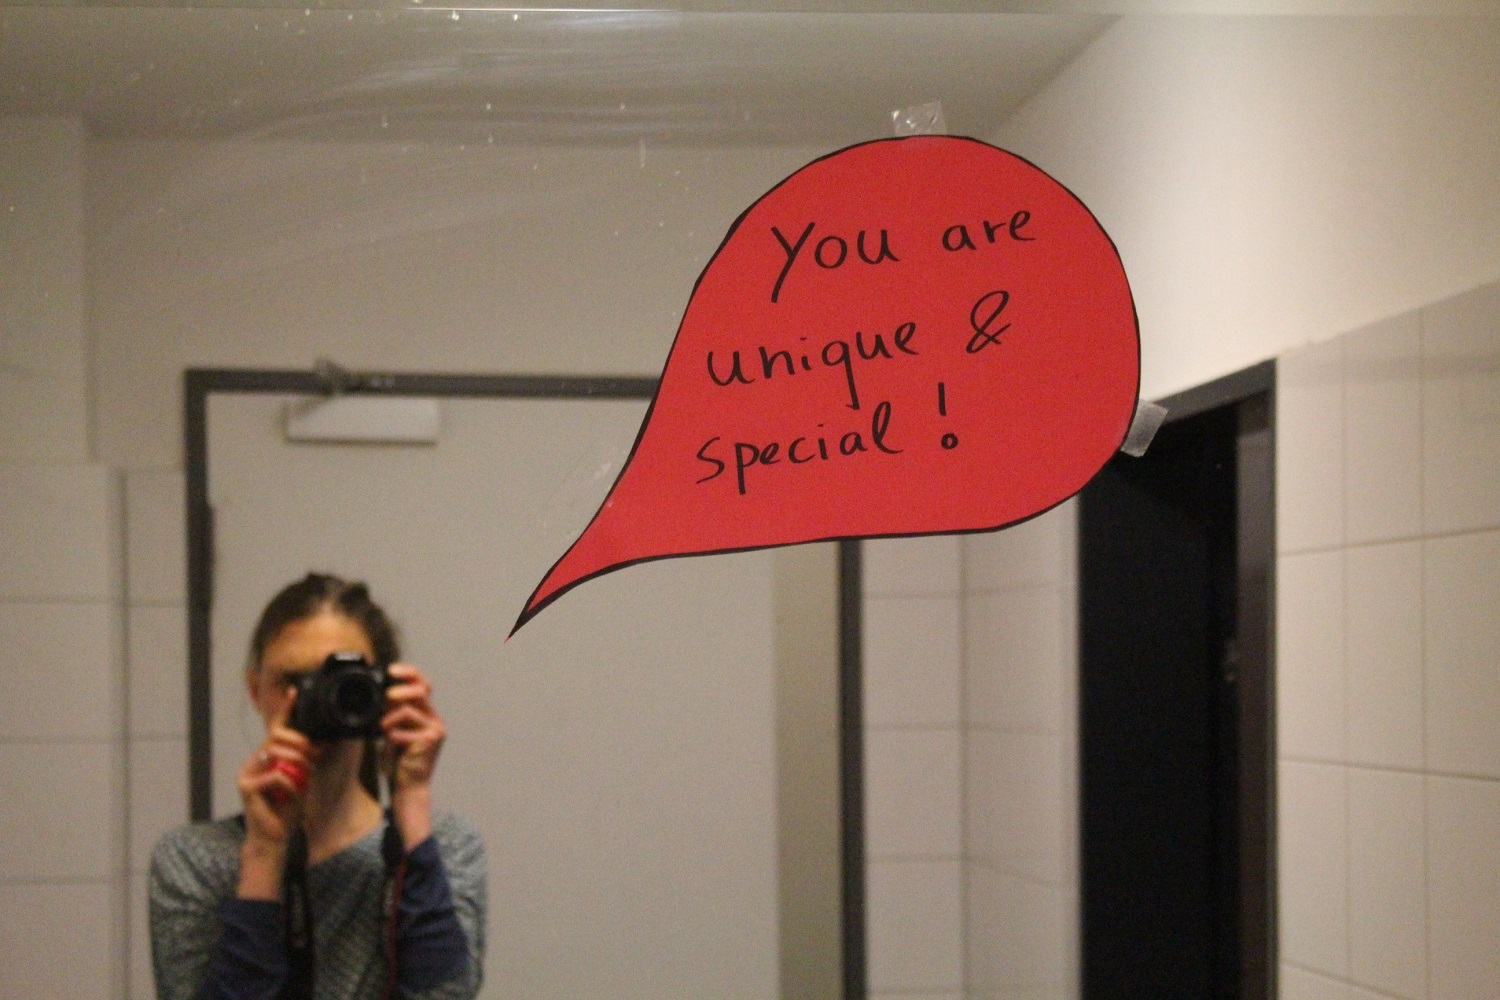 speech bulb on mirror in girl's toilet. Created by 9th graders